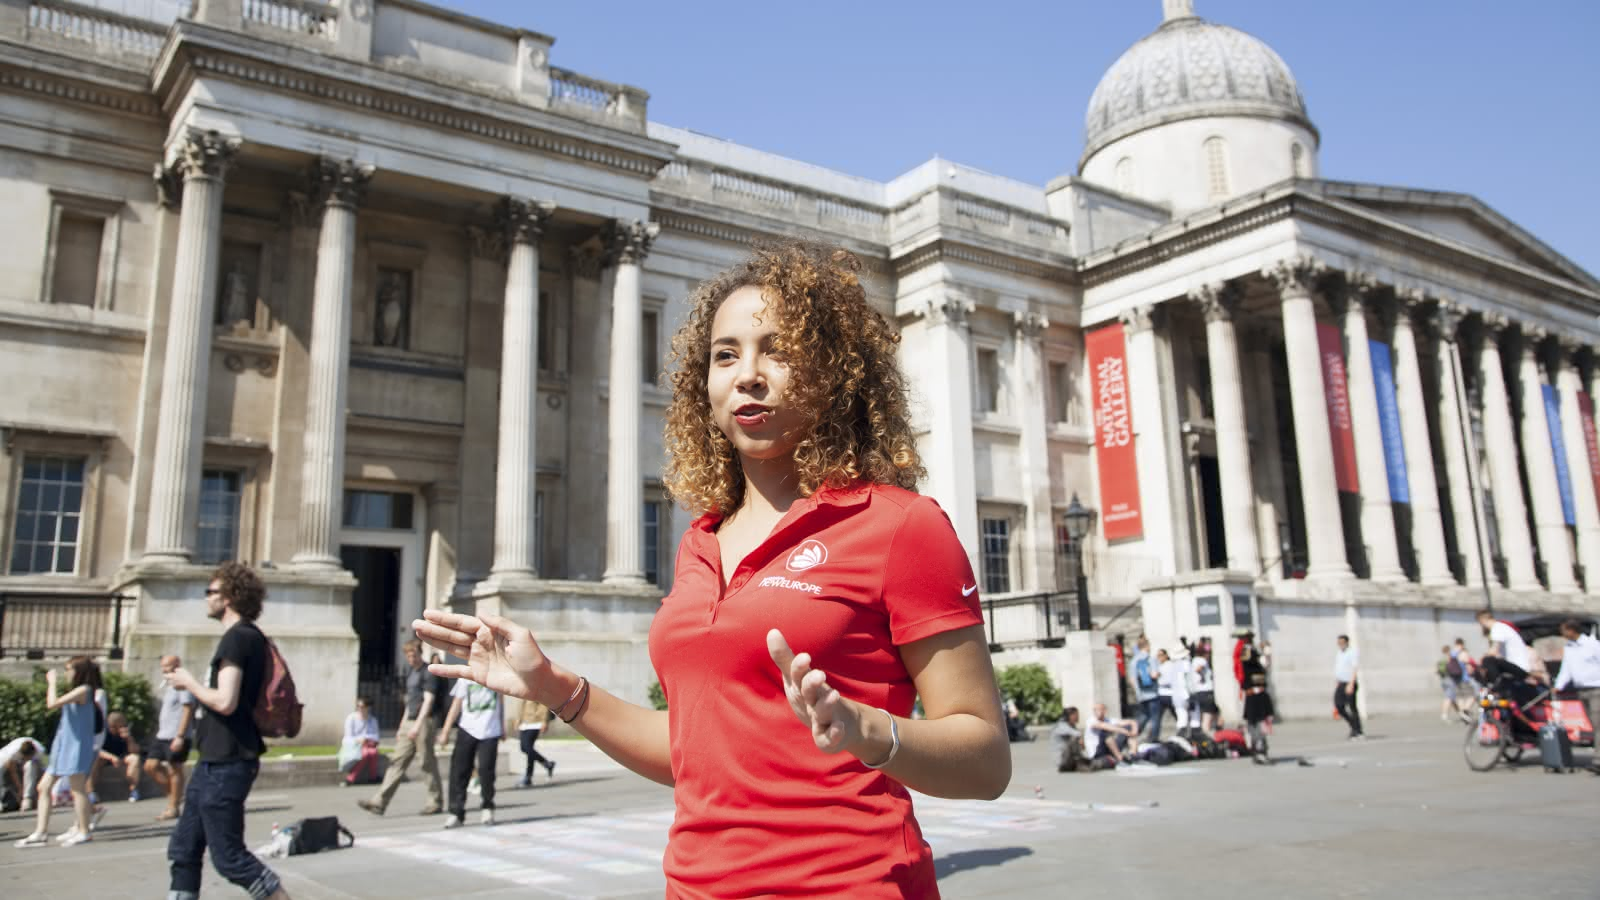 london free tour guide in trafalgar square